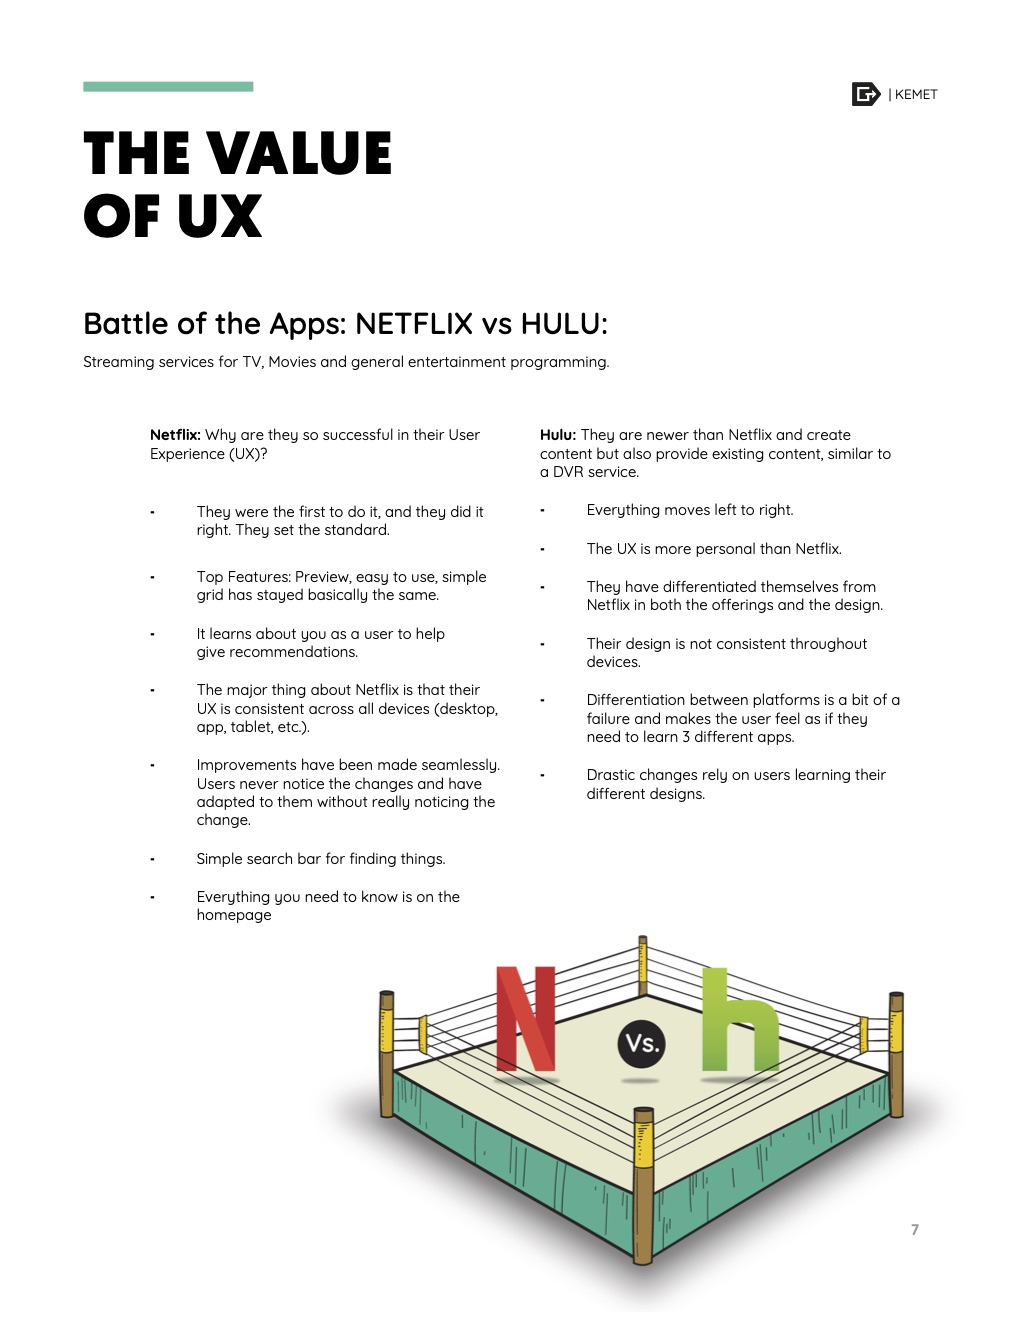 The value of UX results from a Battle of the Apps exercise we did with the team.